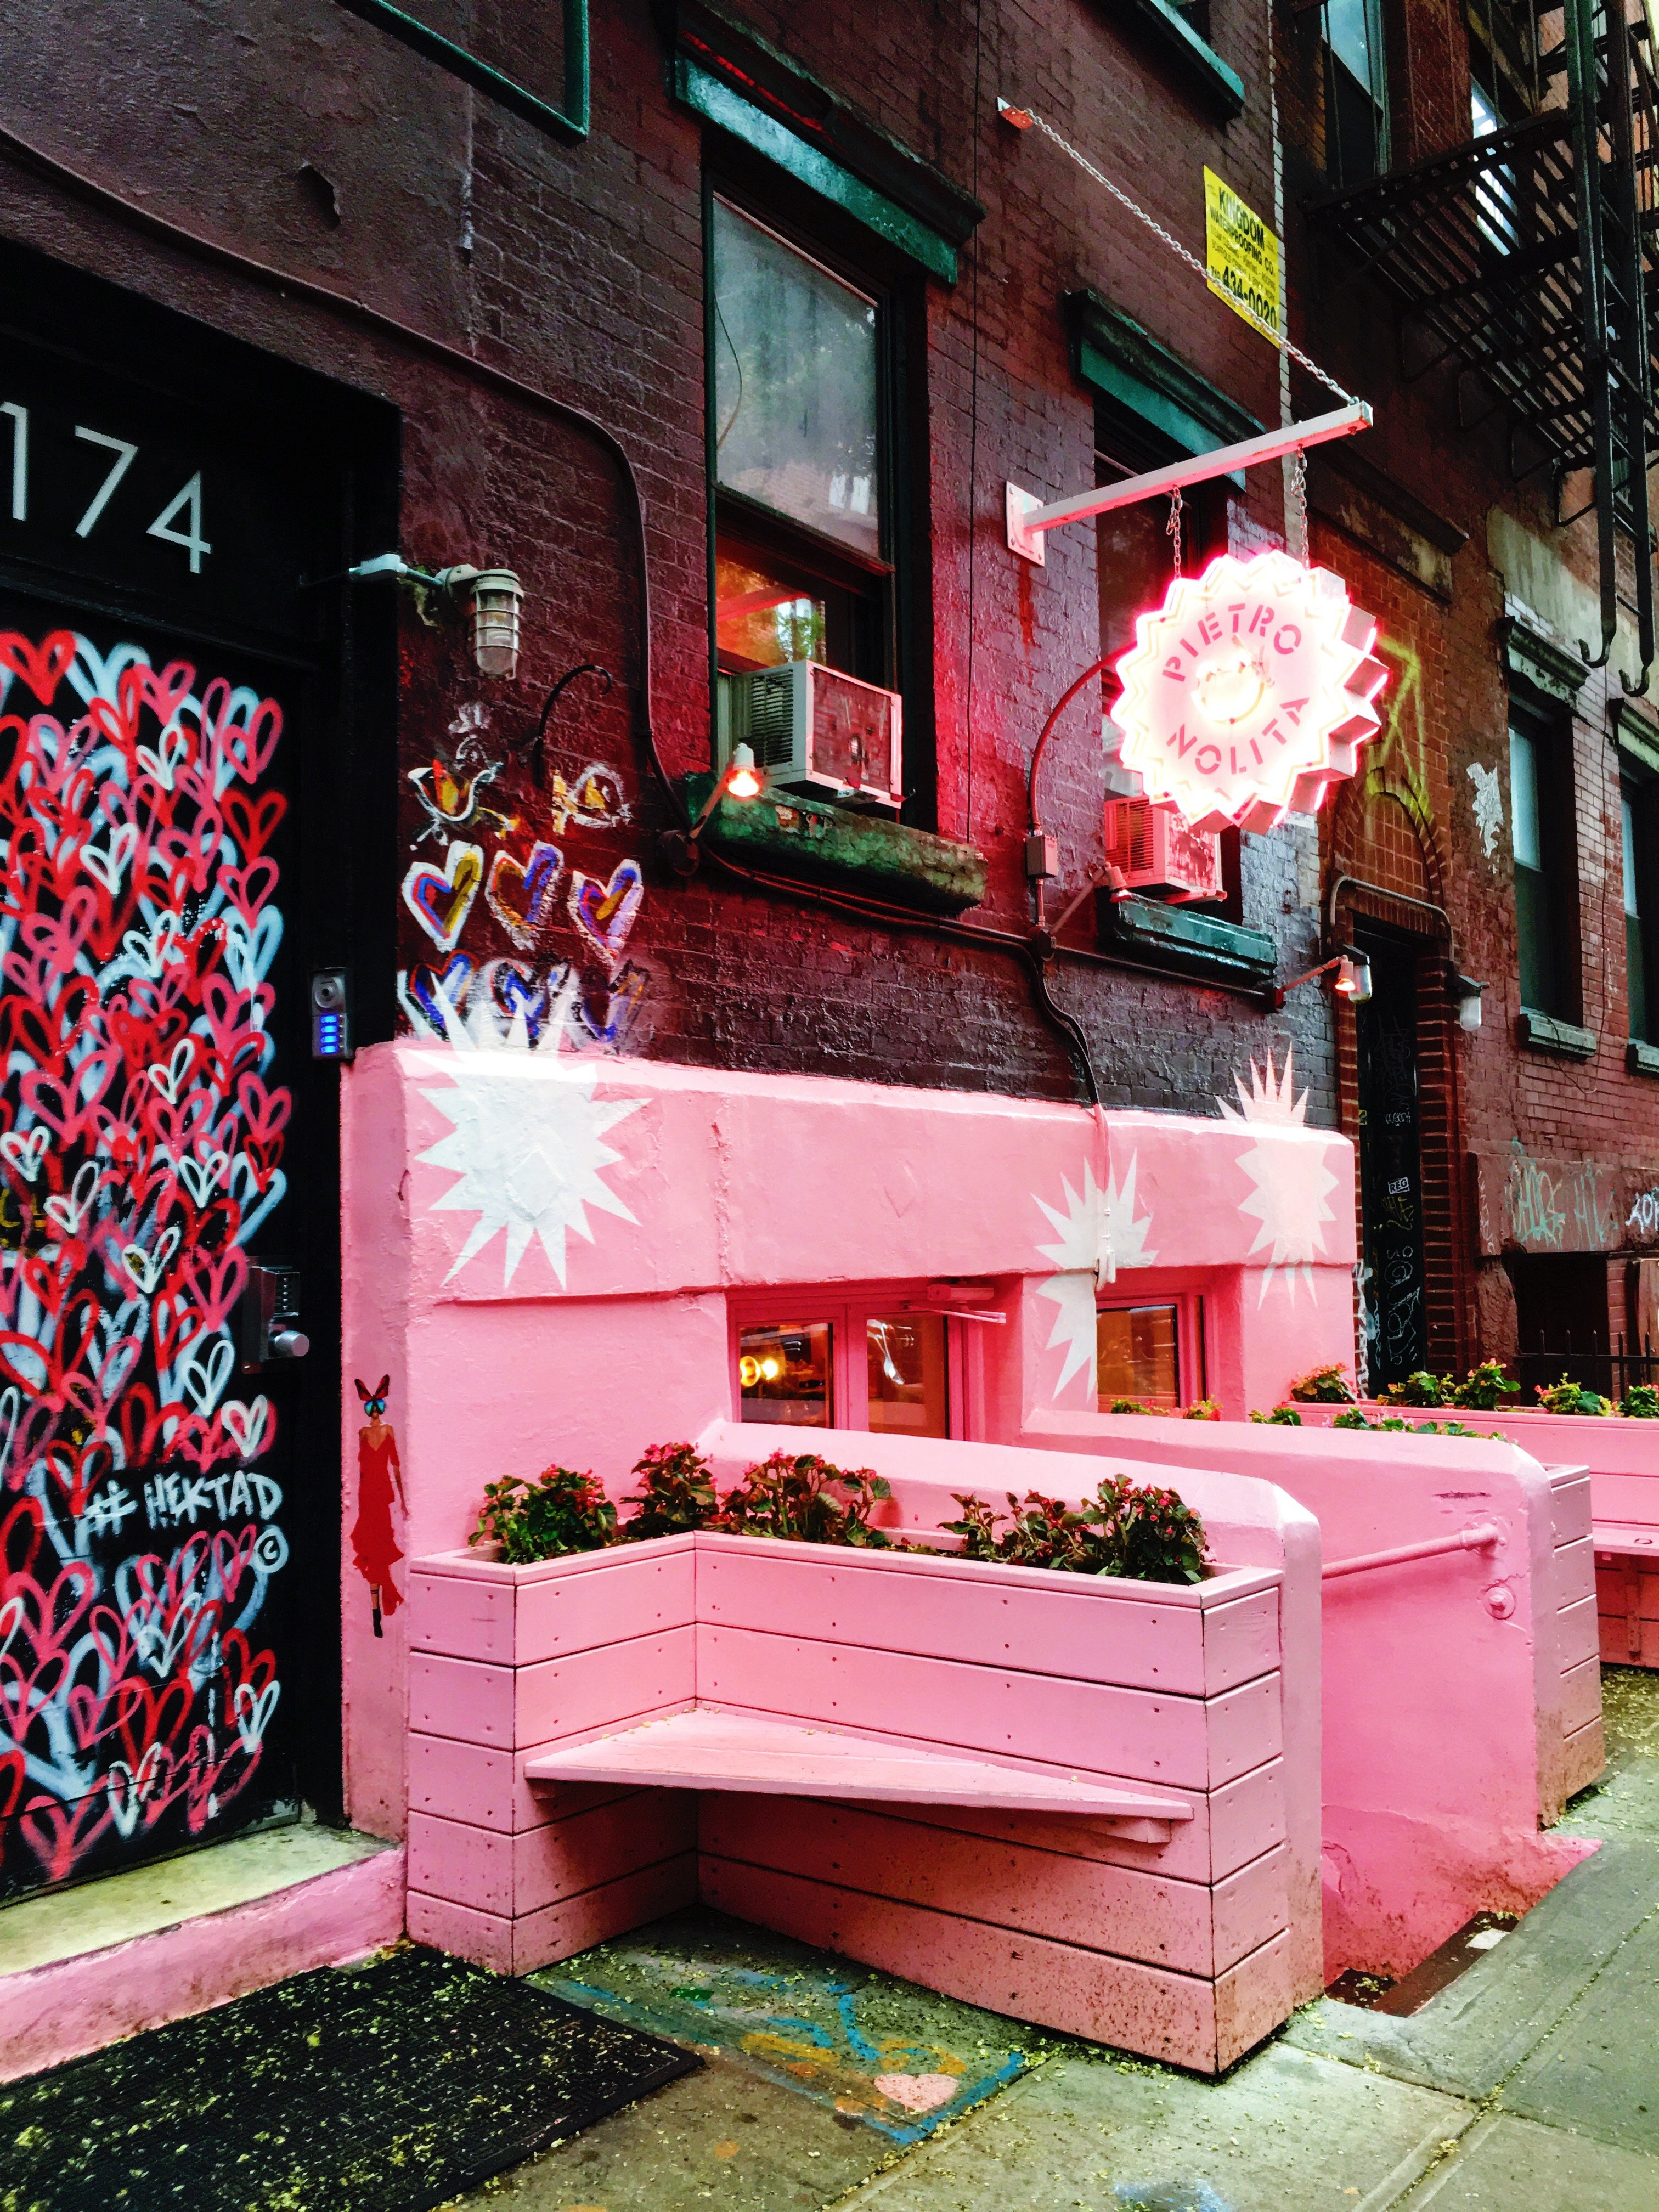 Pietro Nolita is Pink As F%$k | New York City